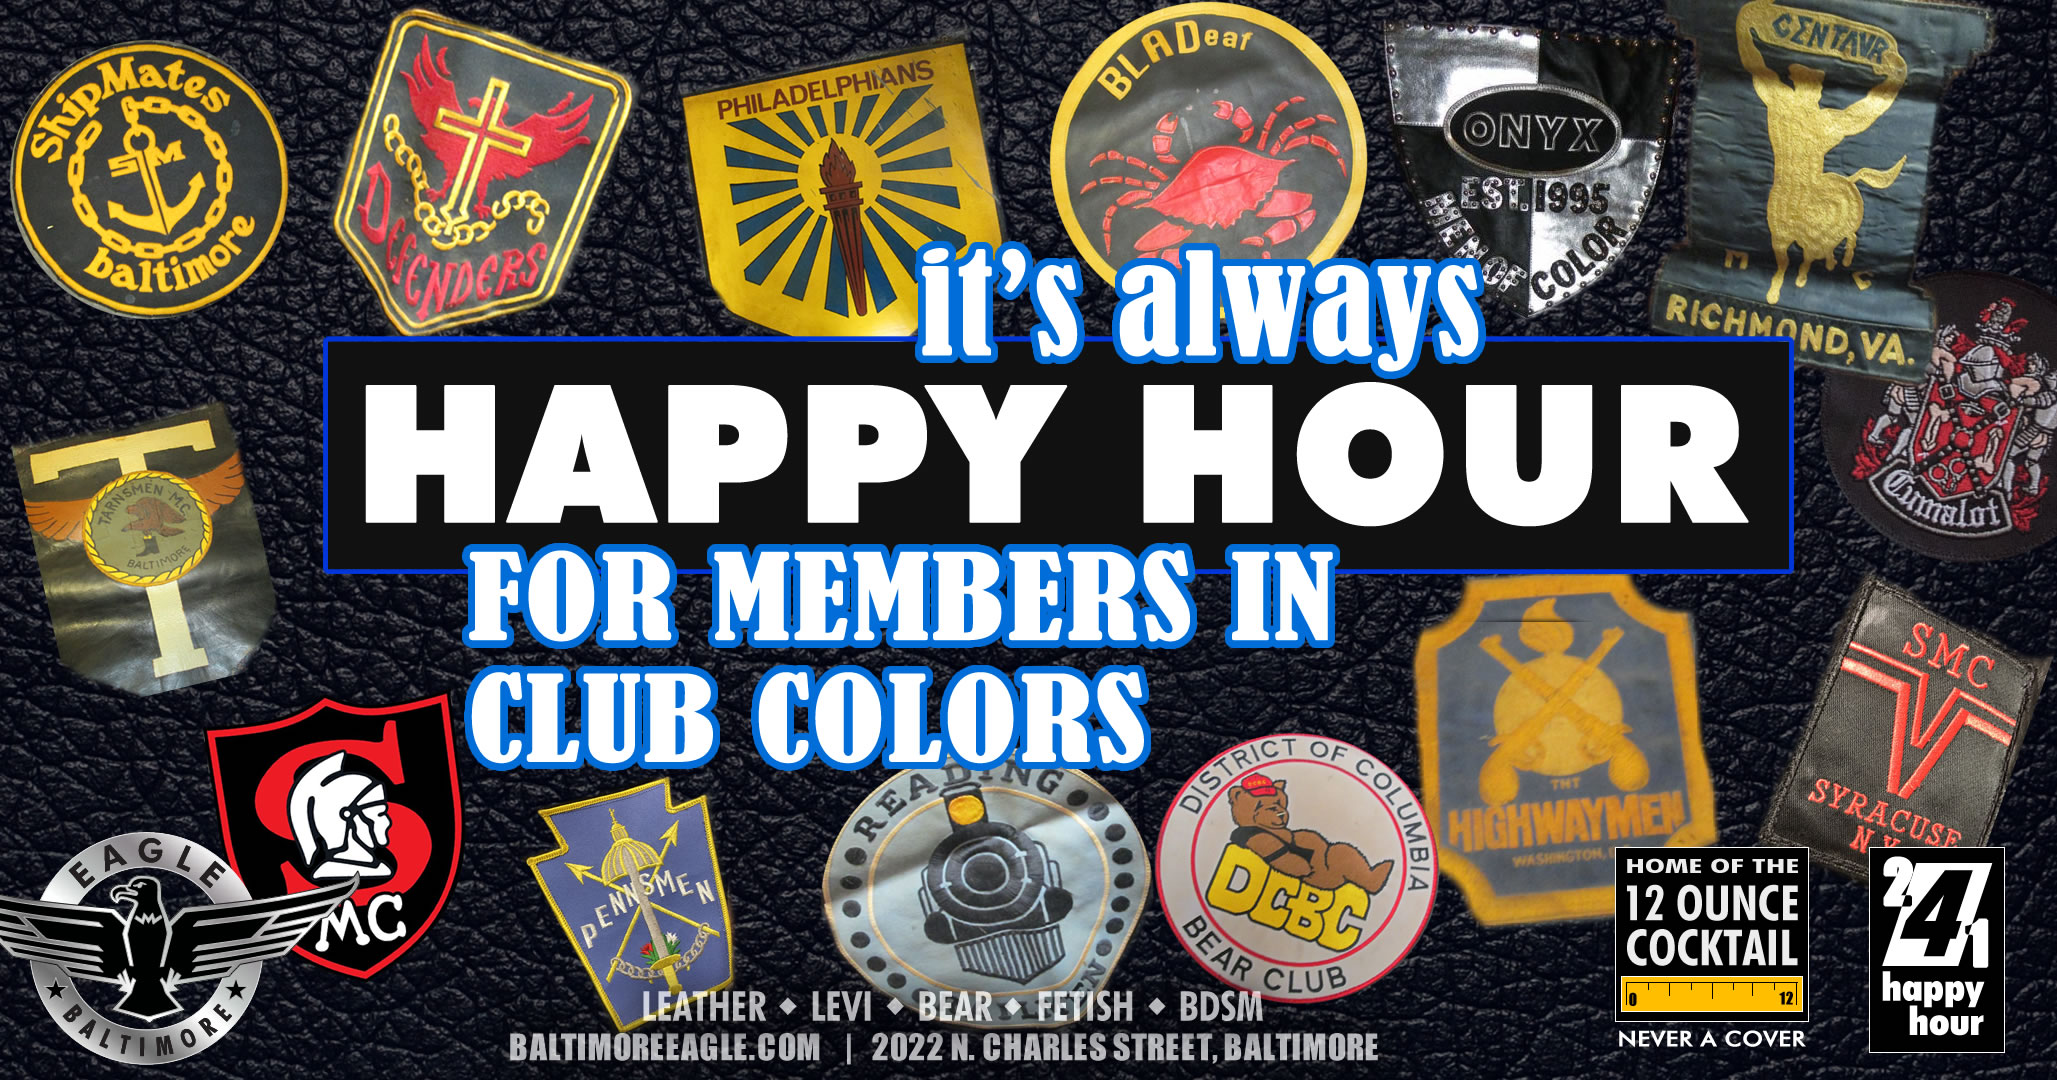 It's always HAPPY HOUR FOR CLUBS